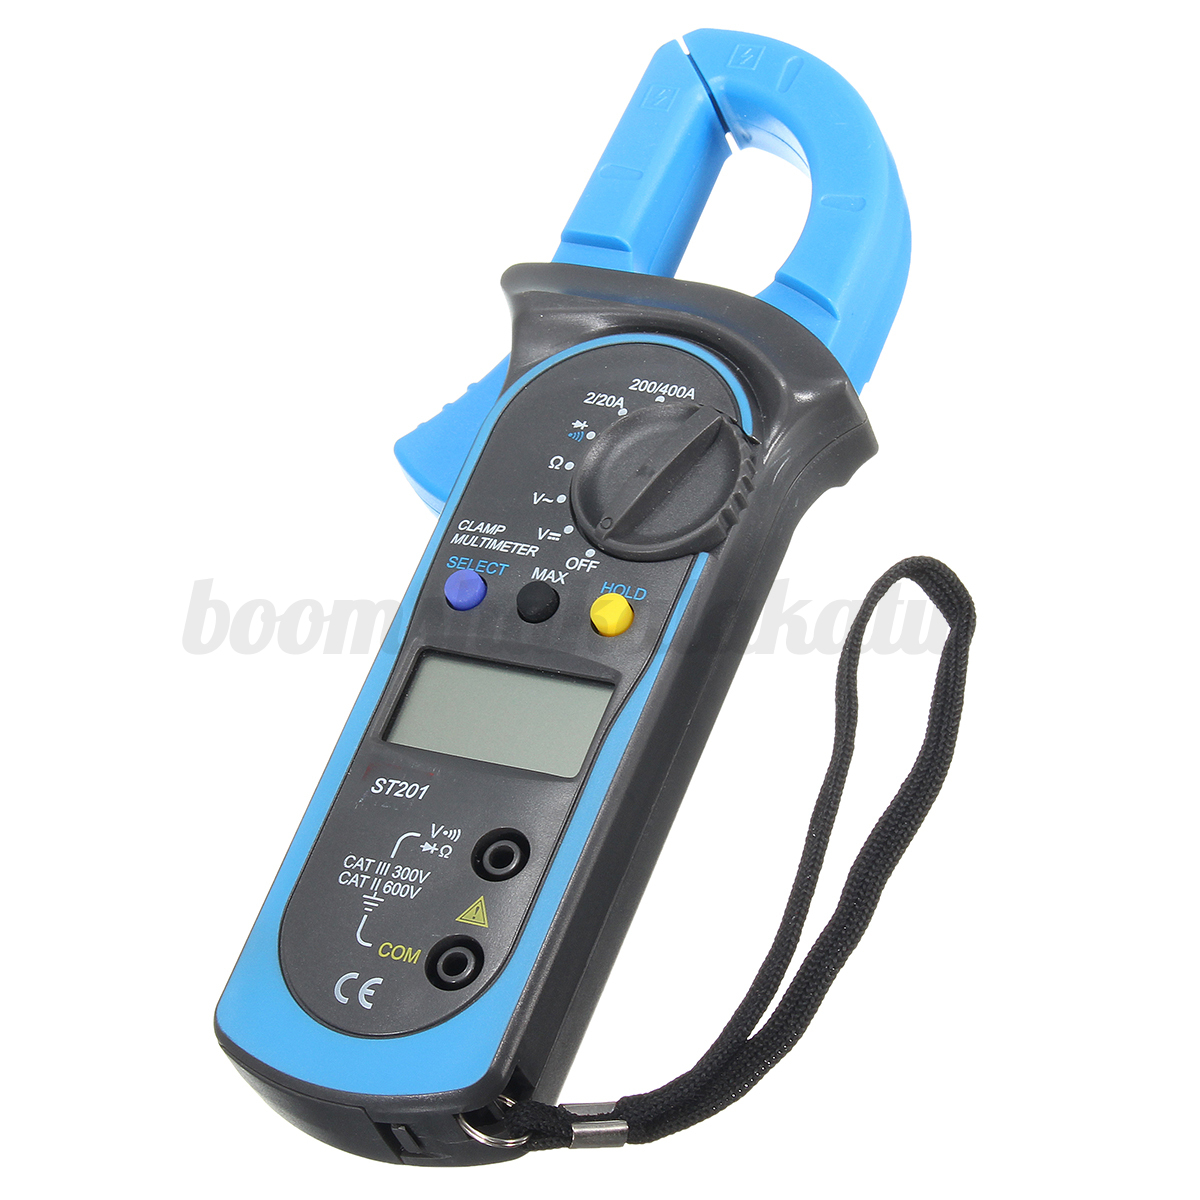 Ac Dc Clamp Meter : Ac dc multimeter electronic tester digital clamp meter